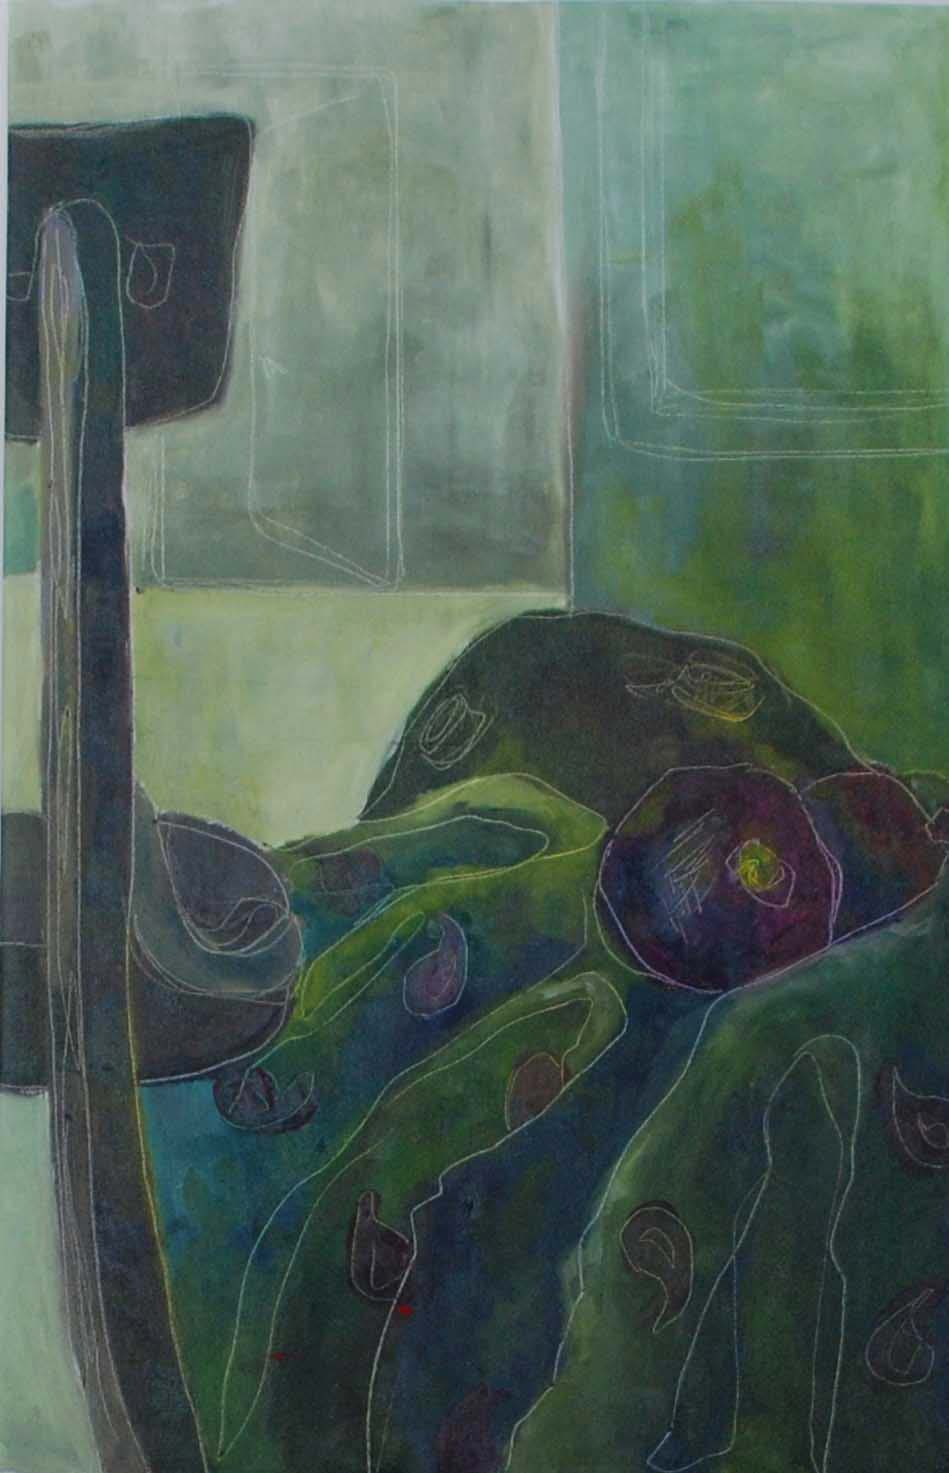 Oil on canvas, 40*60 cm, 2005